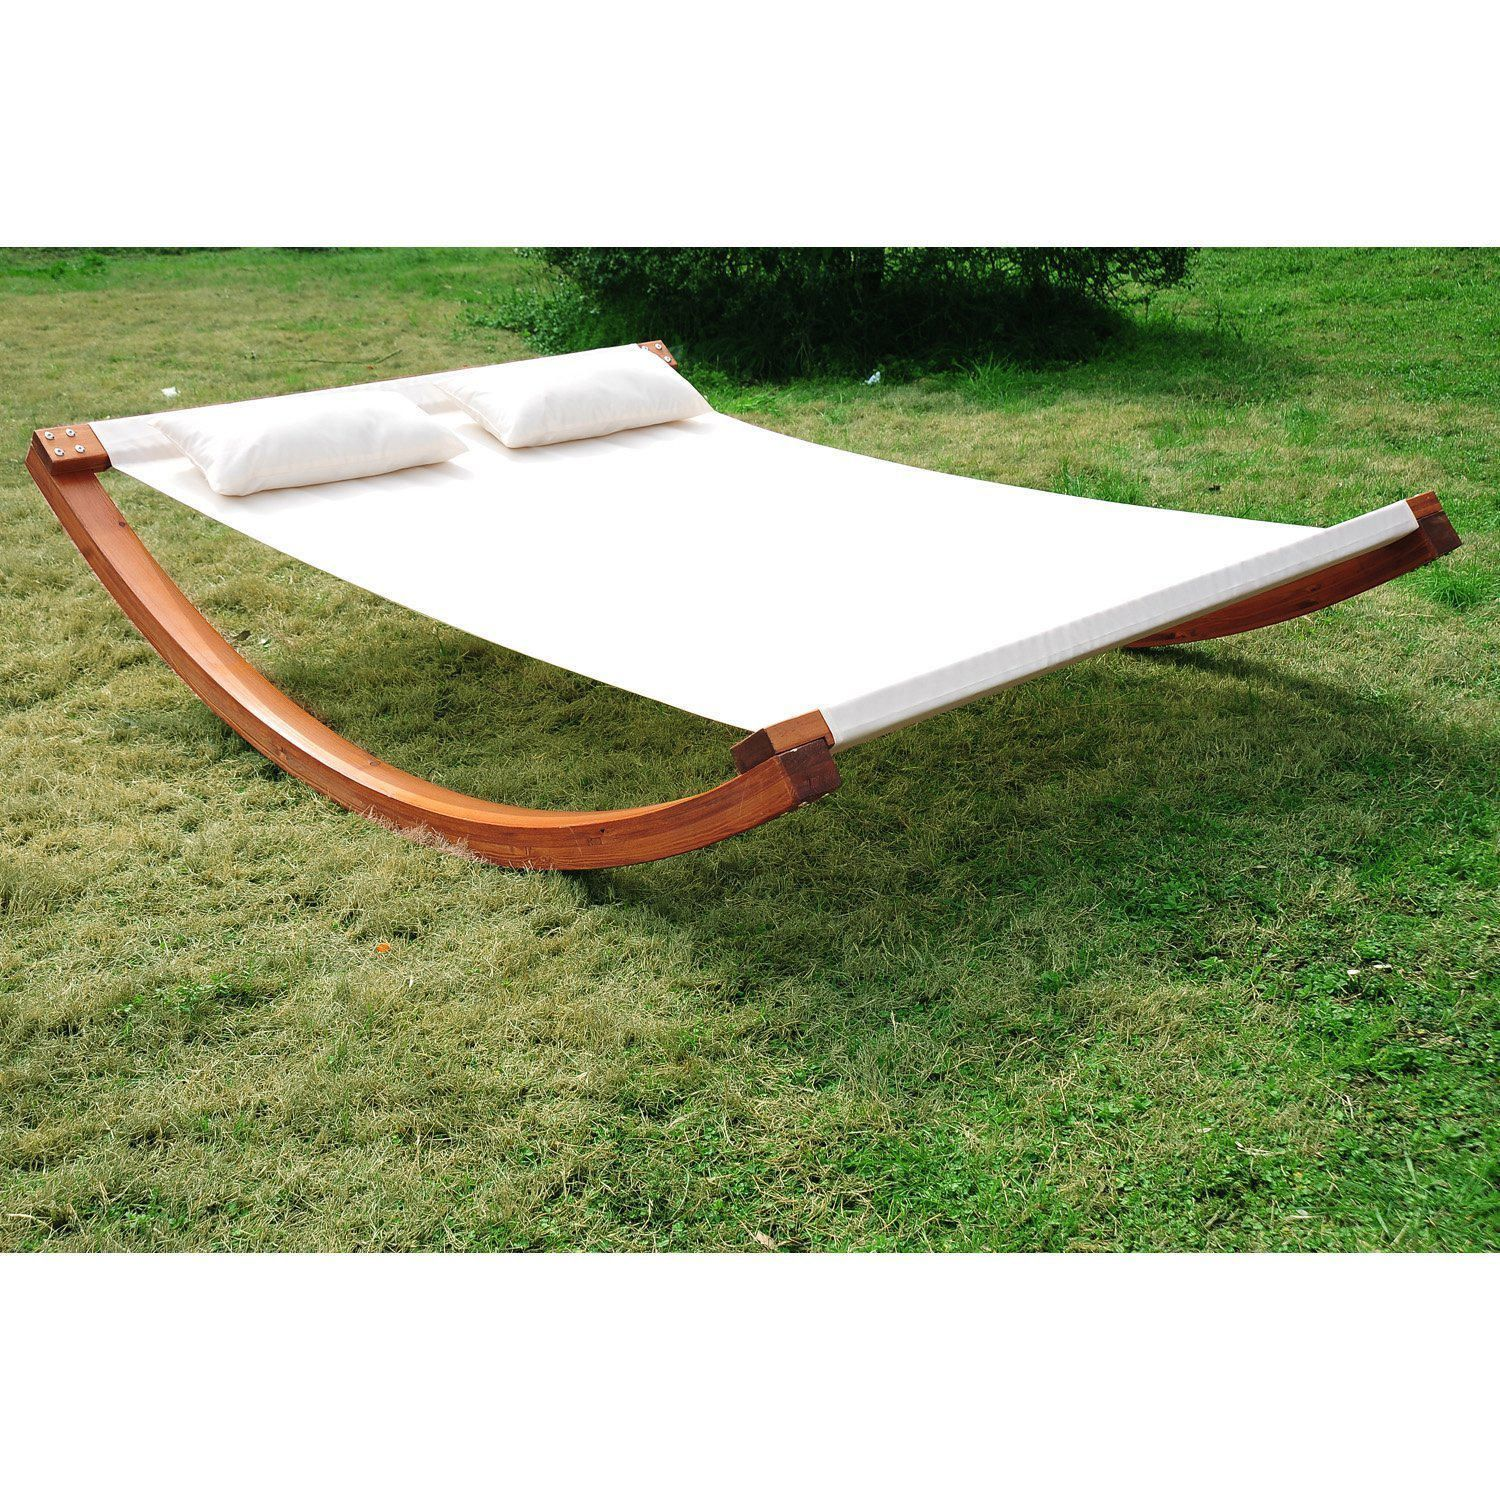 Pin by Heath Morgan on Wood projects in 2020 | Sun lounger ...